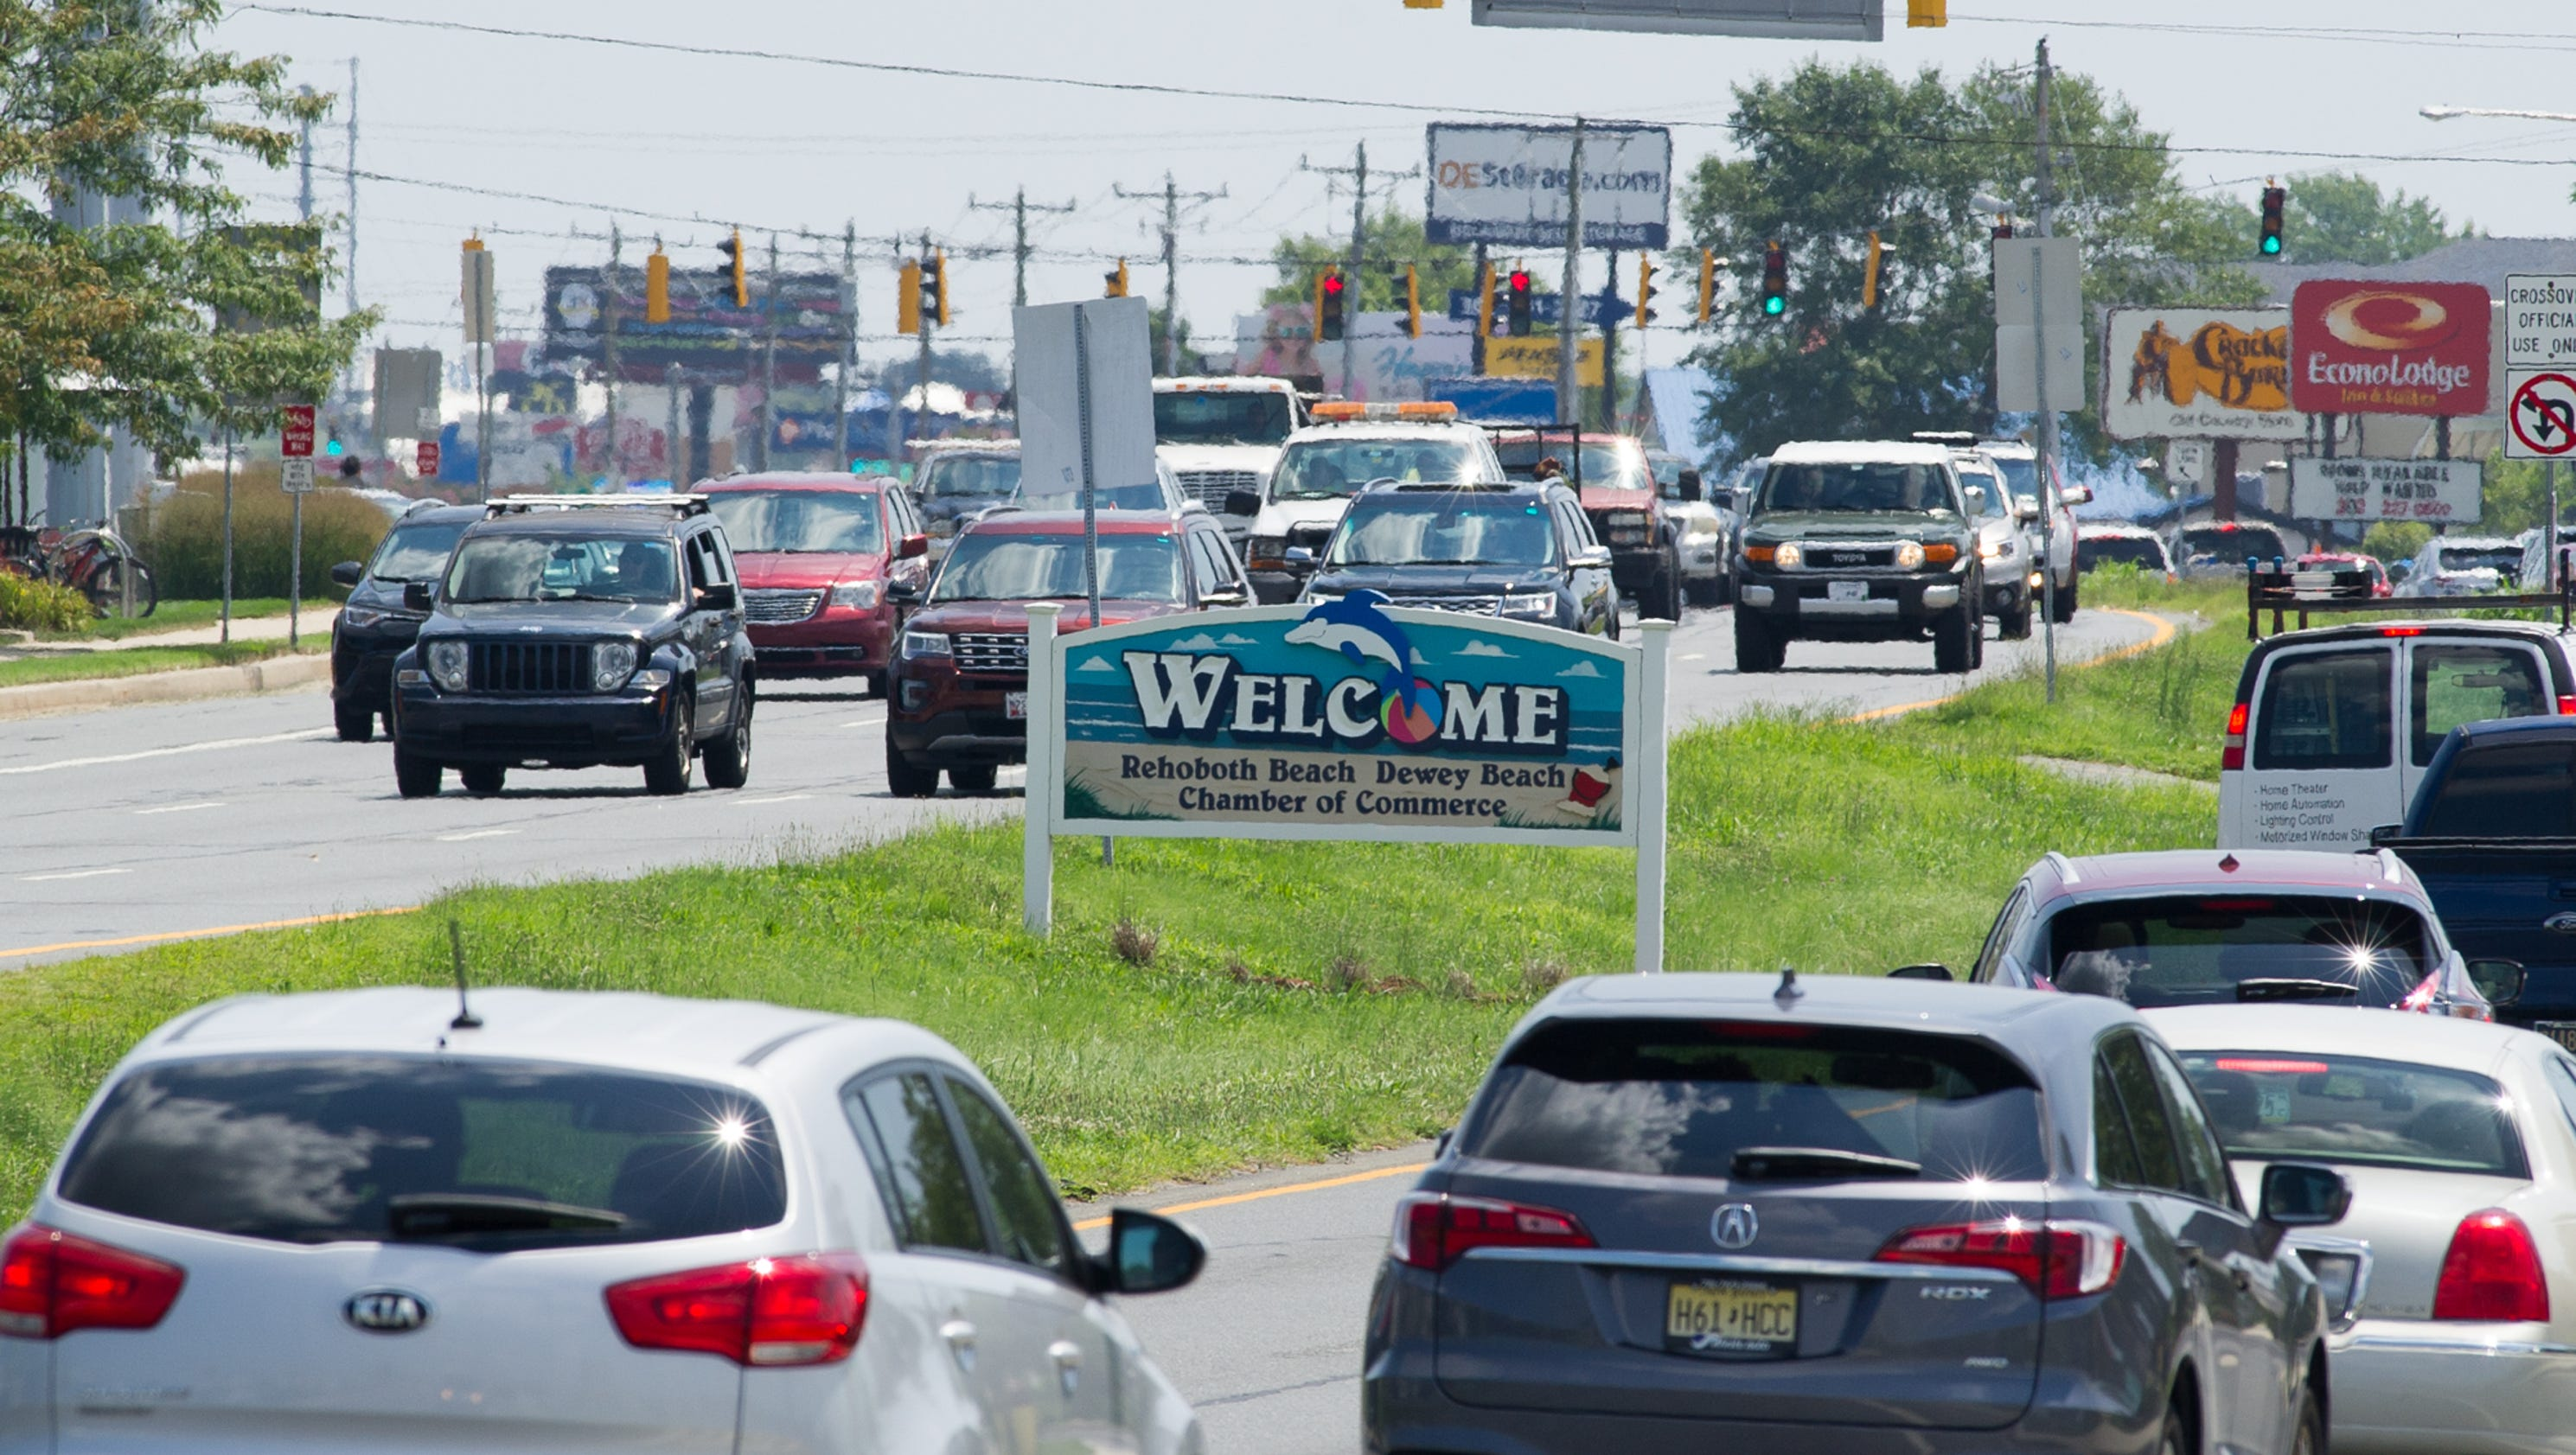 Wilmington Gas Prices >> Delaware beach traffic still frustrating, but there are ways around it